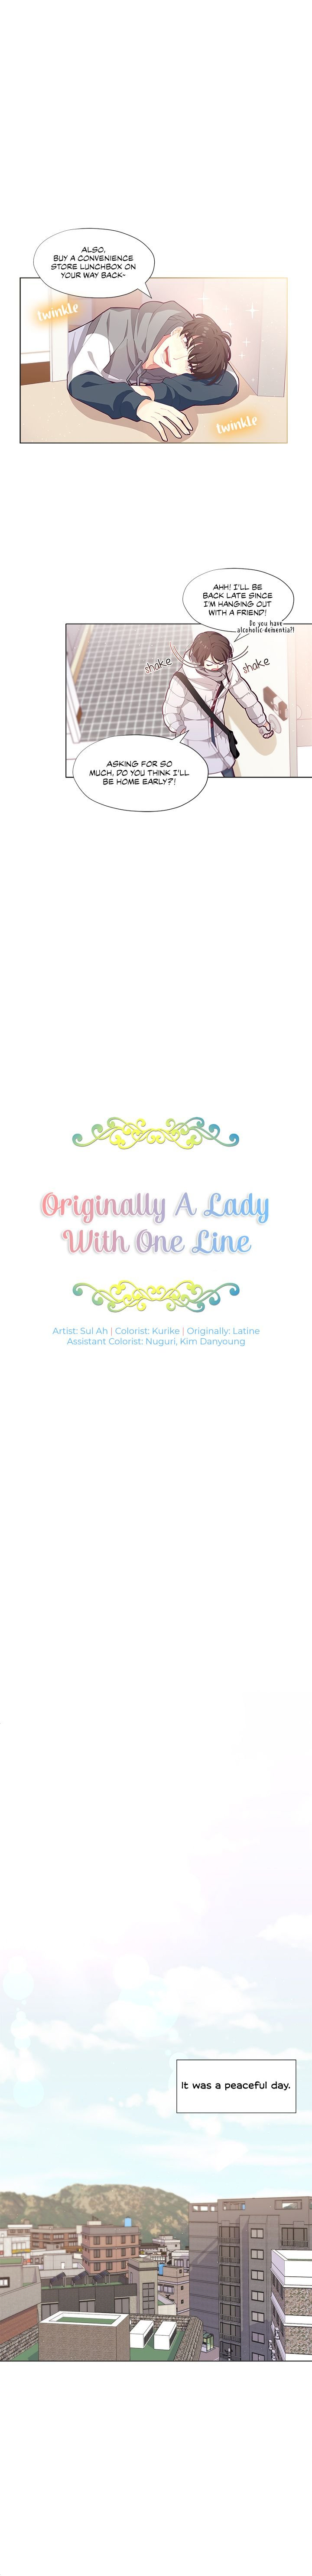 Originally A Lady With One Line - chapter 1 - #3